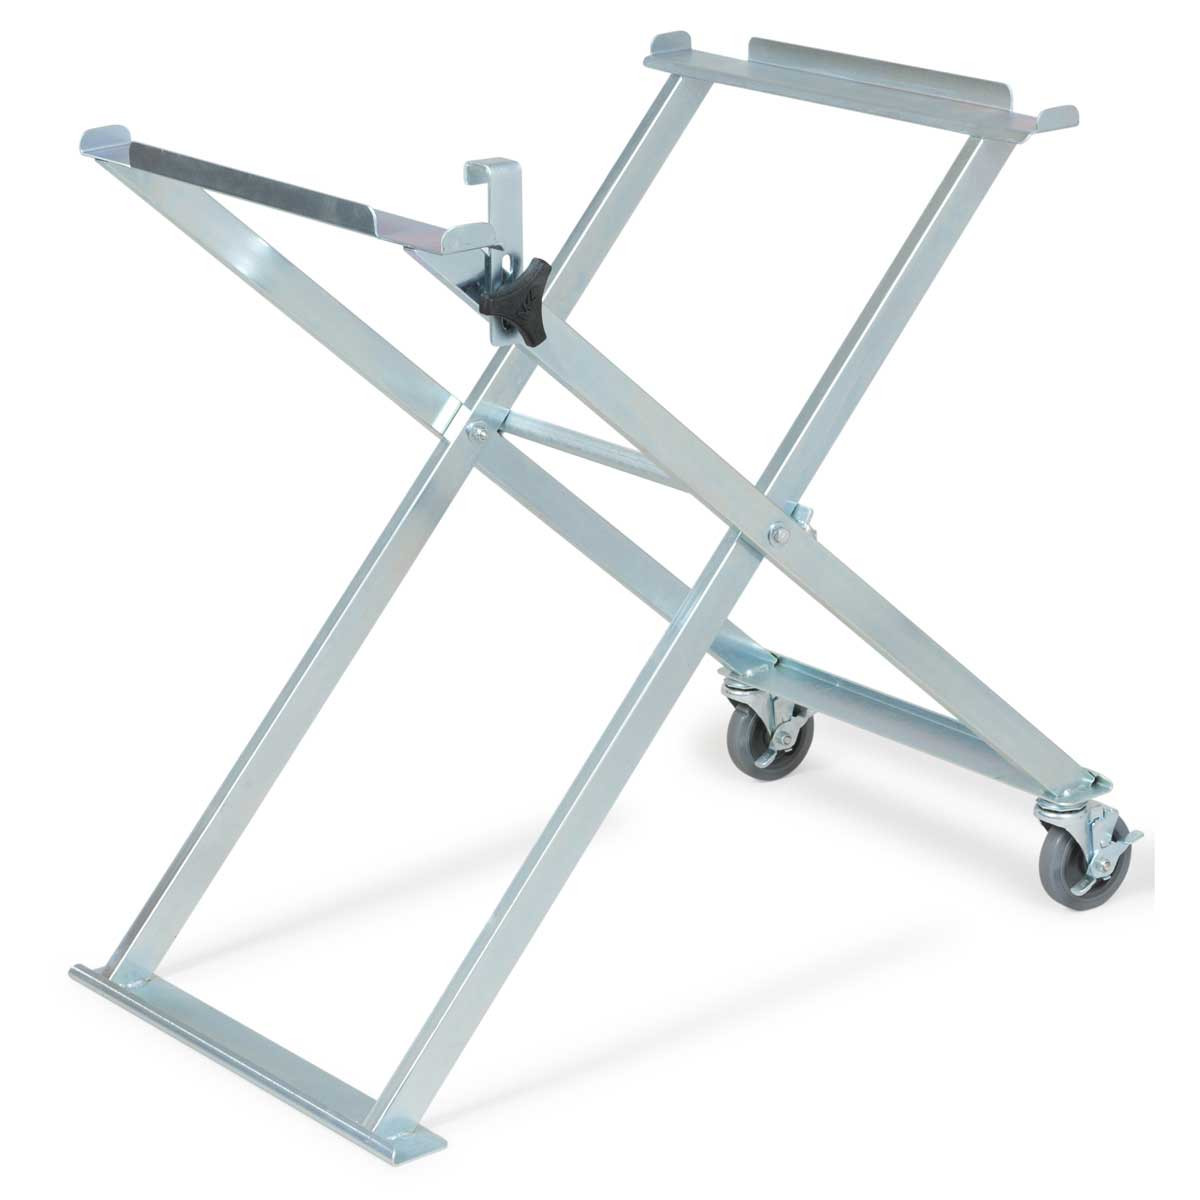 MK pro tile saw series folding scissor stand